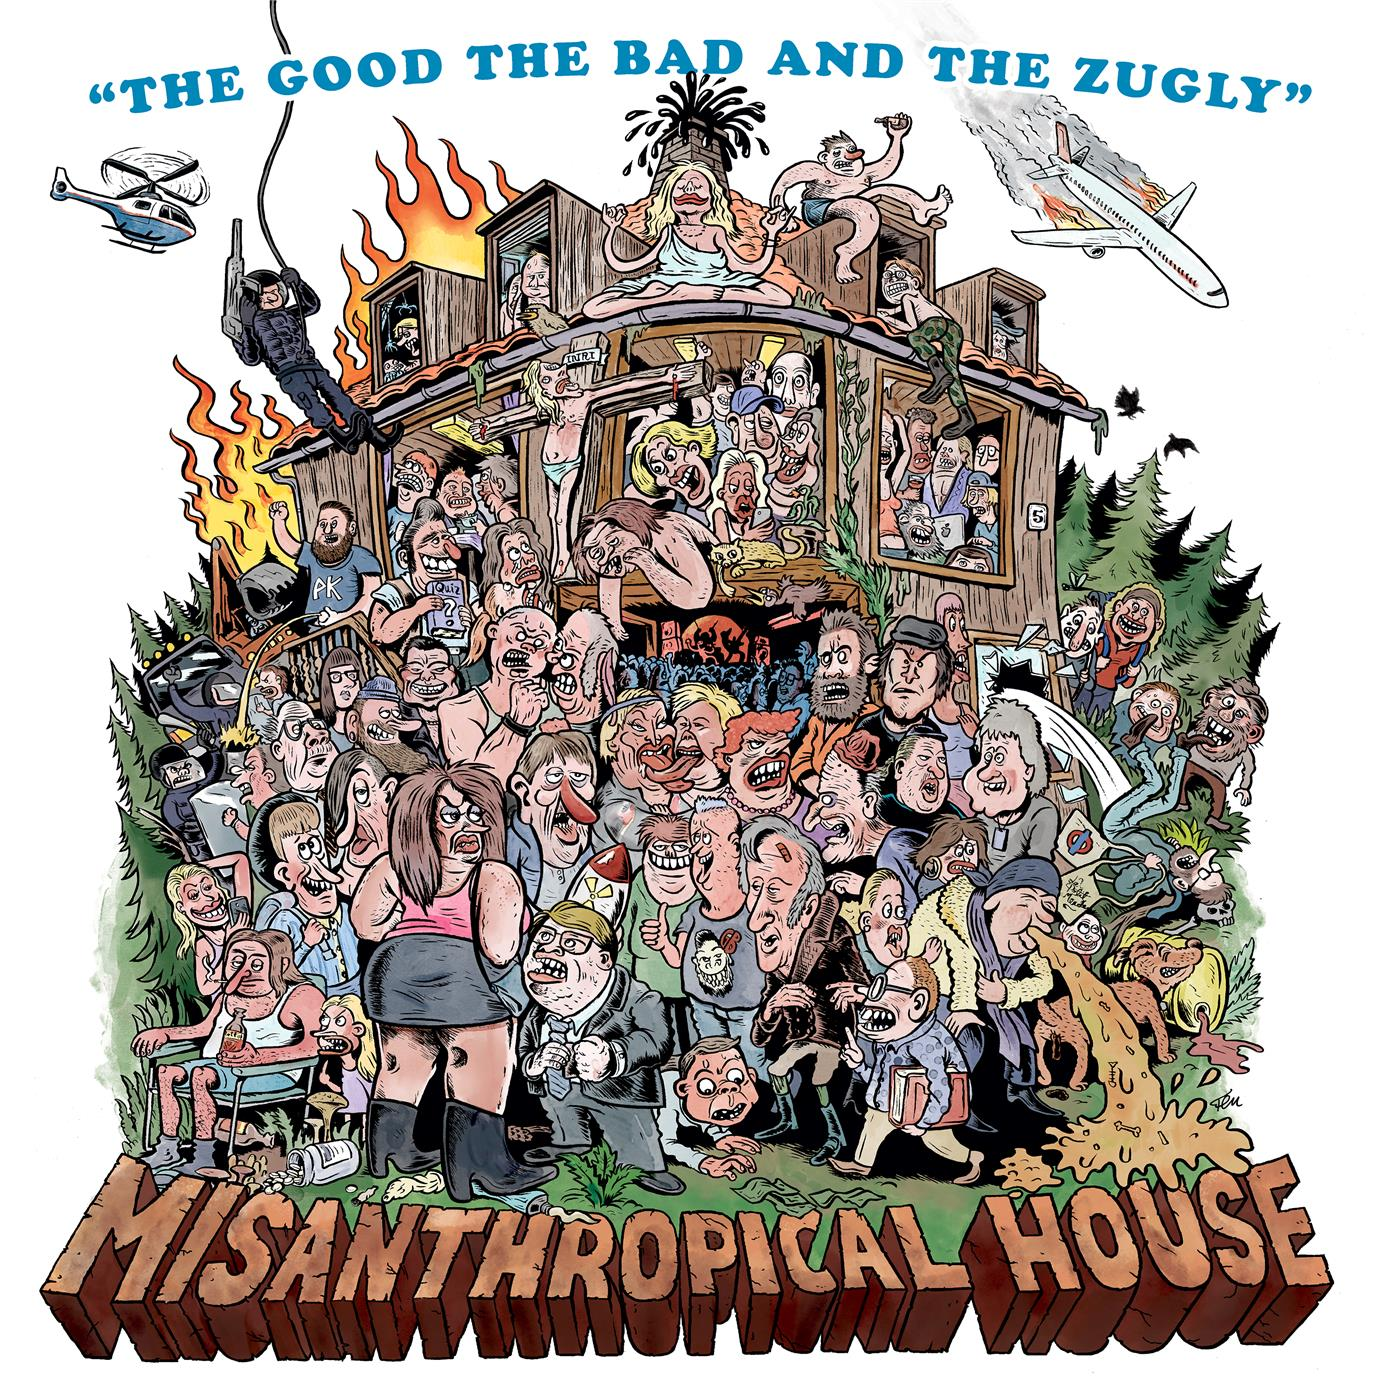 The Good, The Bad & The Zugly – Misanthropical House [LP]